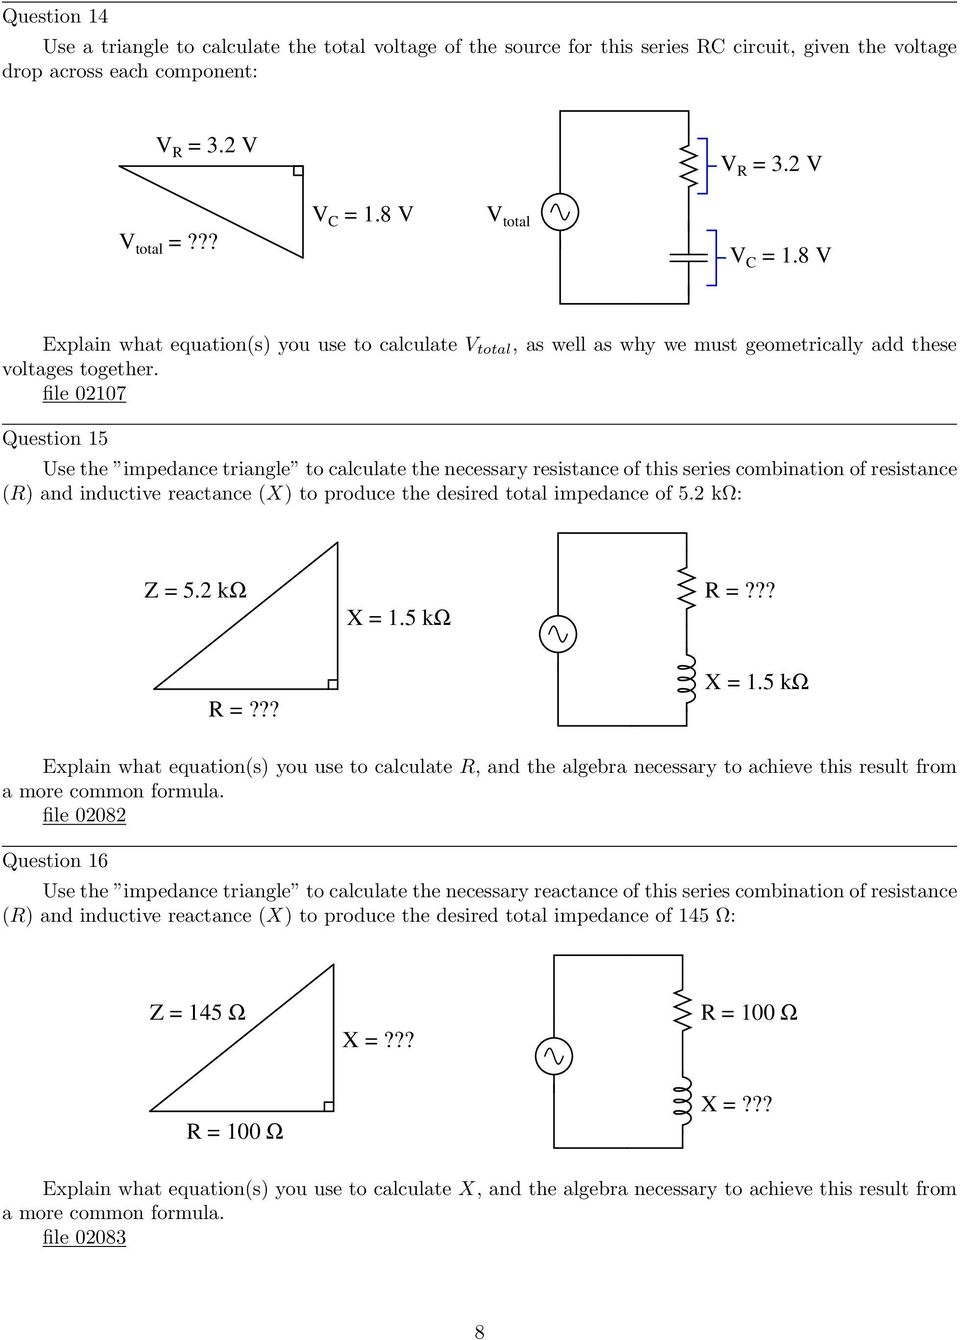 Trigonometry For Ac Circuits Pdf The Capacitive Reactance And Circuit Impedance Is Calculated As File 02107 Question 15 Use Triangle To Calculate Necessary Resistance Of This Series